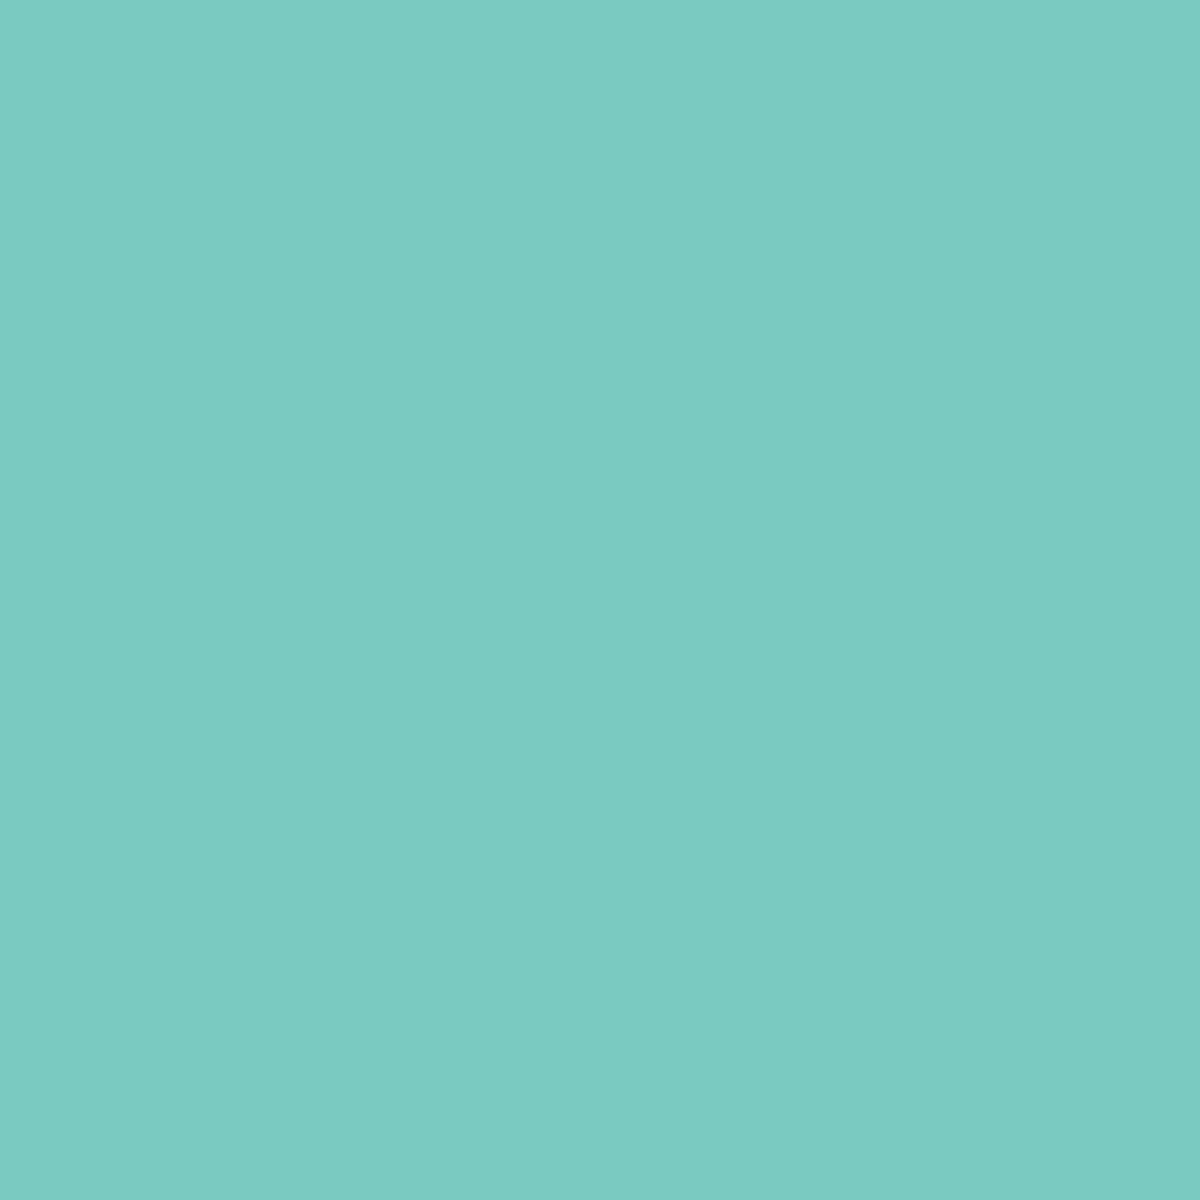 The Gulf - Soft Turquoise